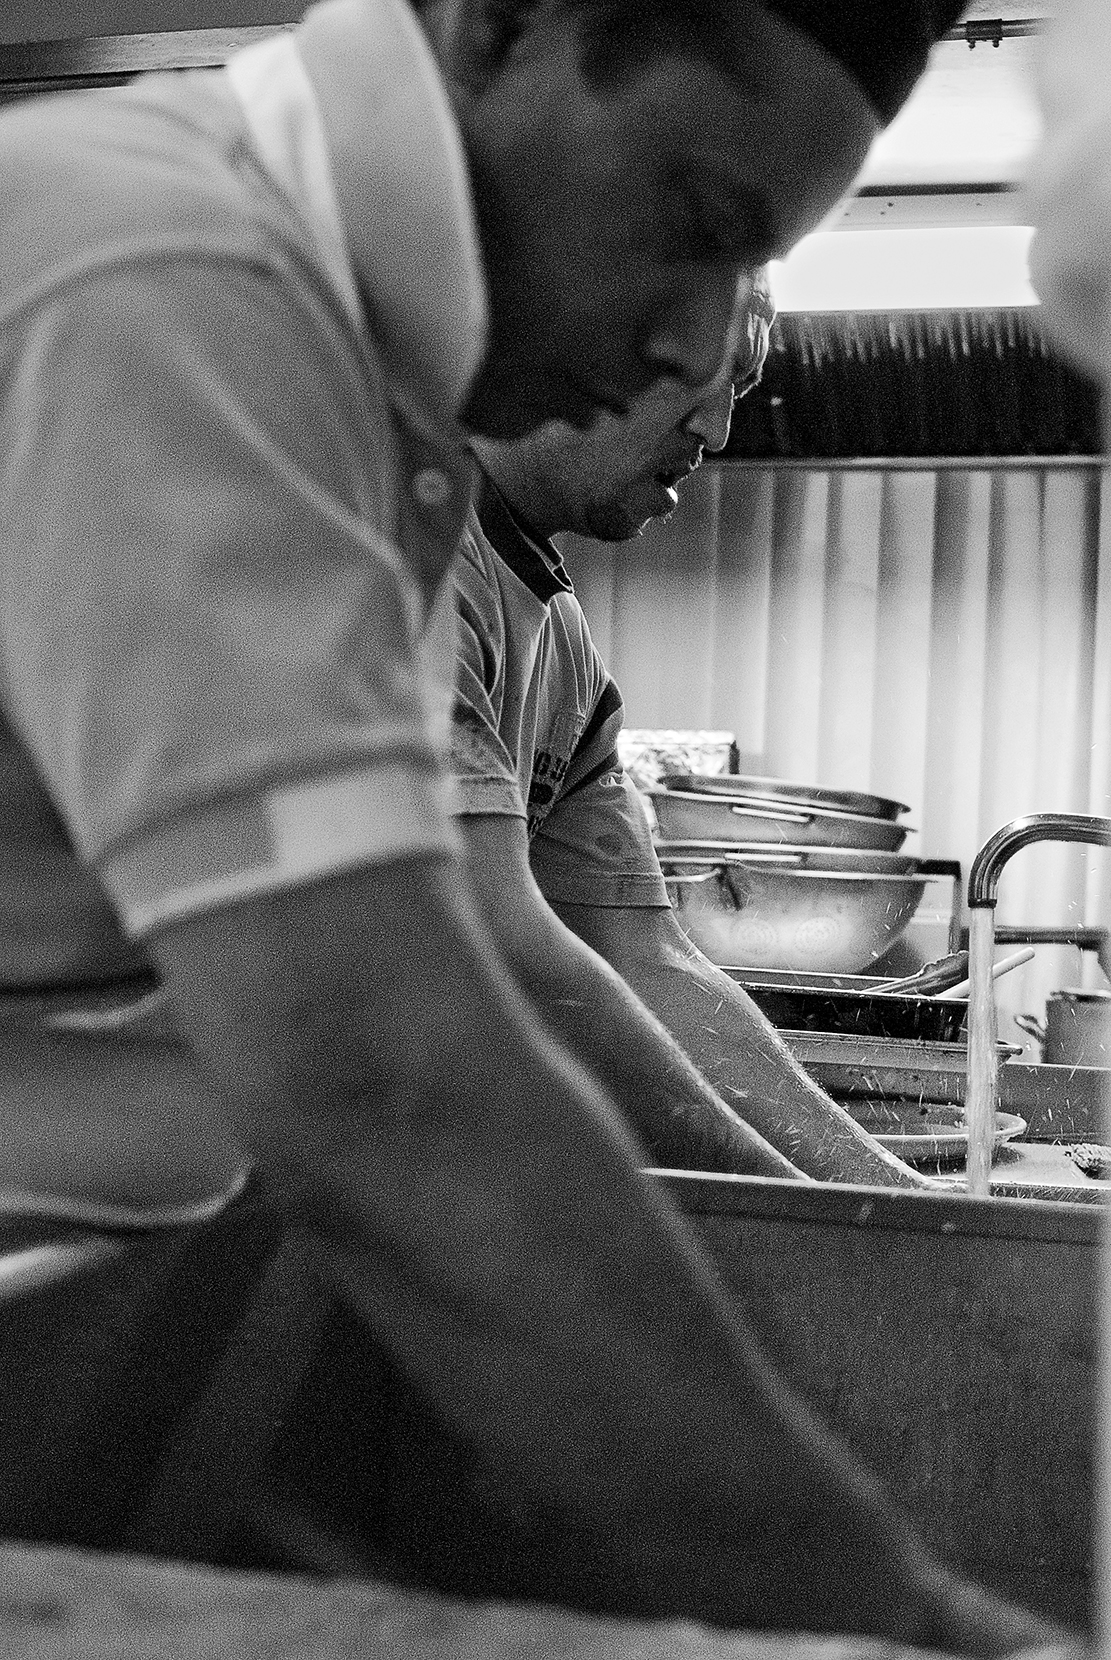 workers-washing-dishes.jpg